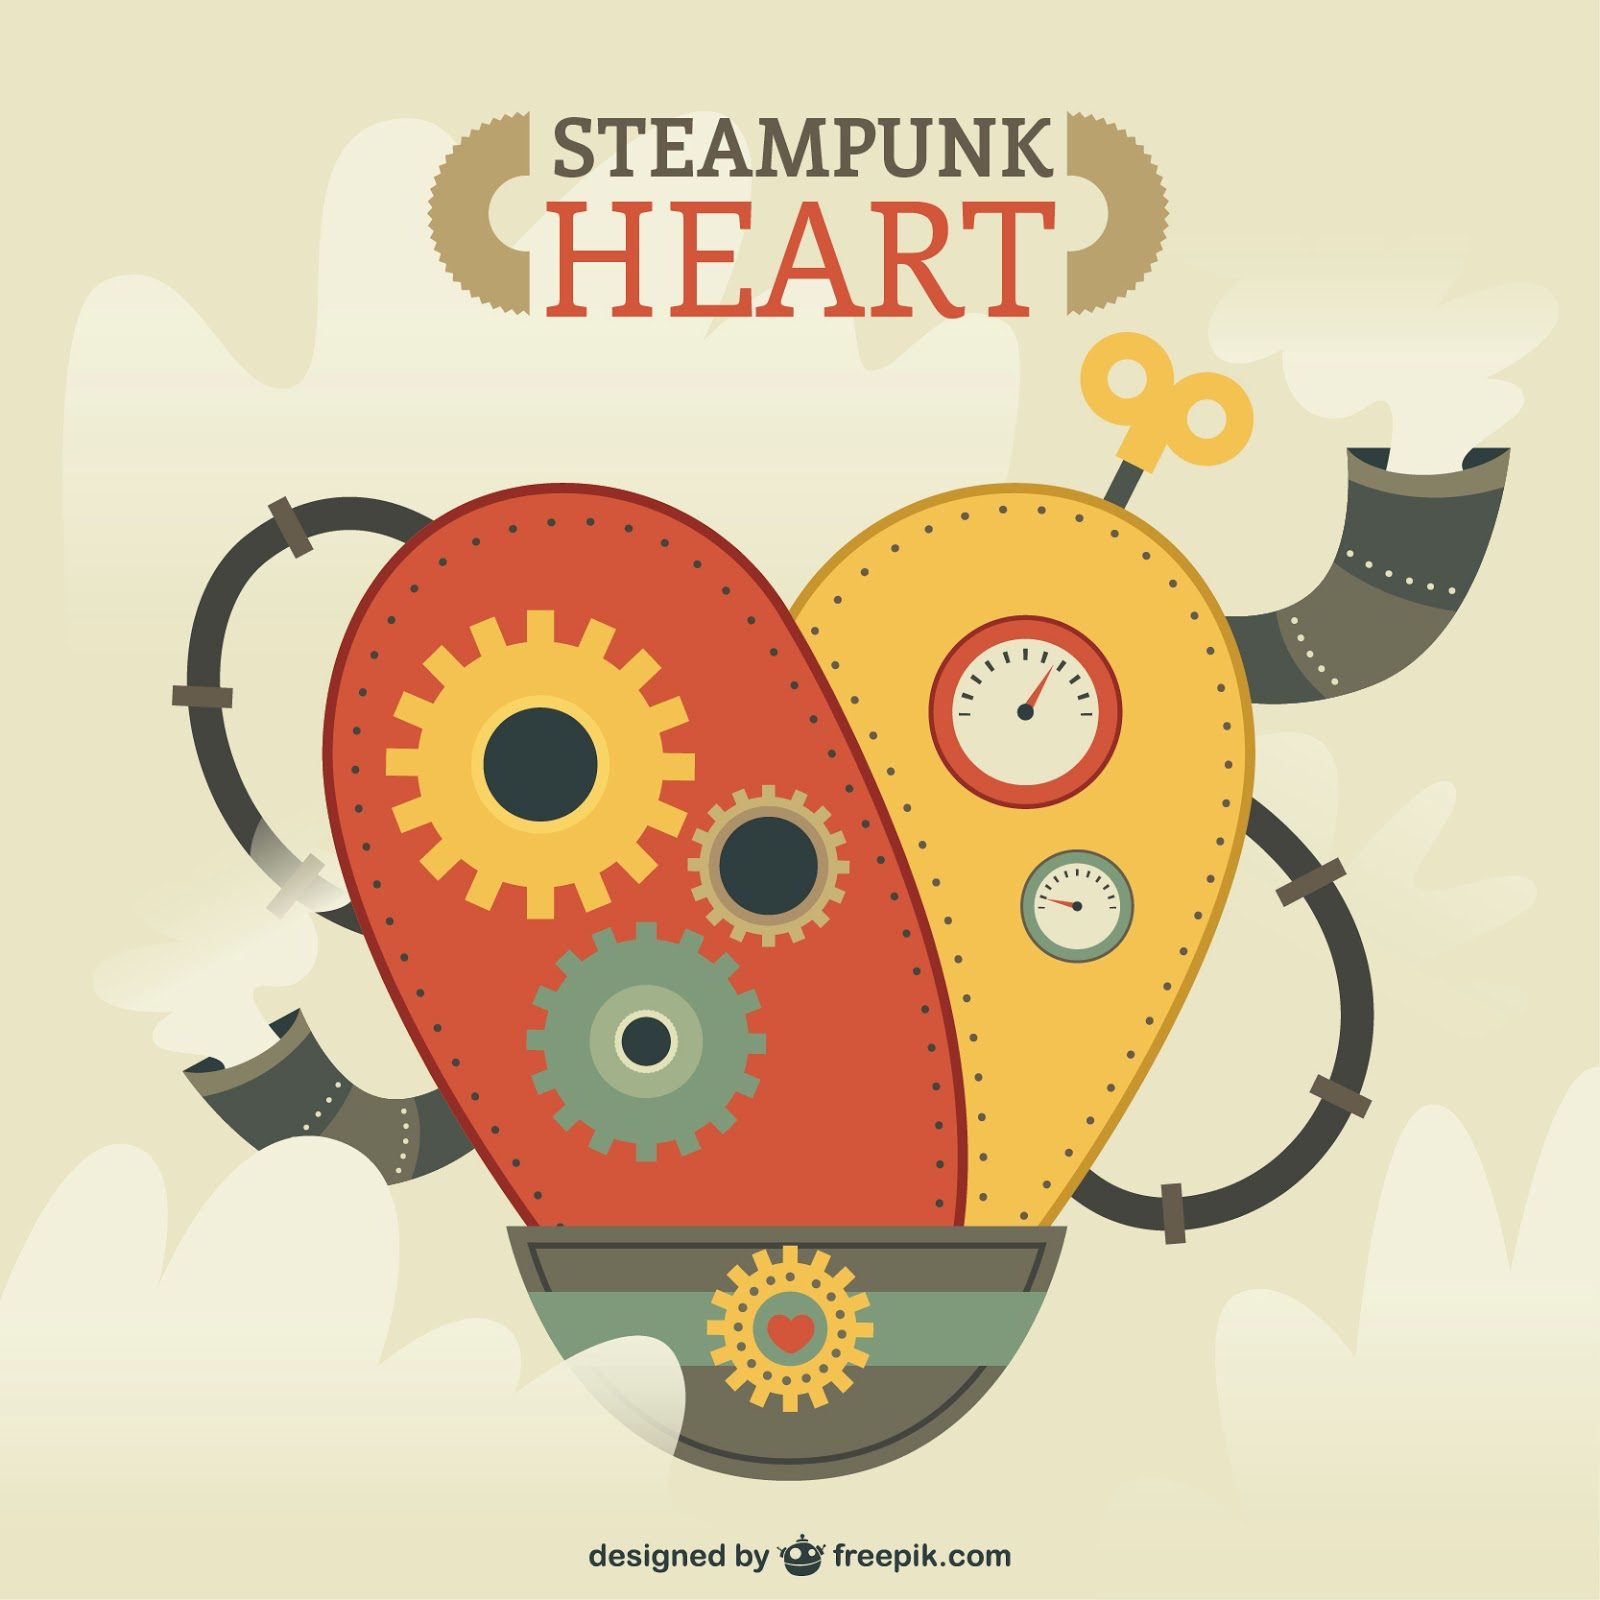 Steampunk Heart Illustration Free Download Vector CDR, AI, EPS and PNG Formats